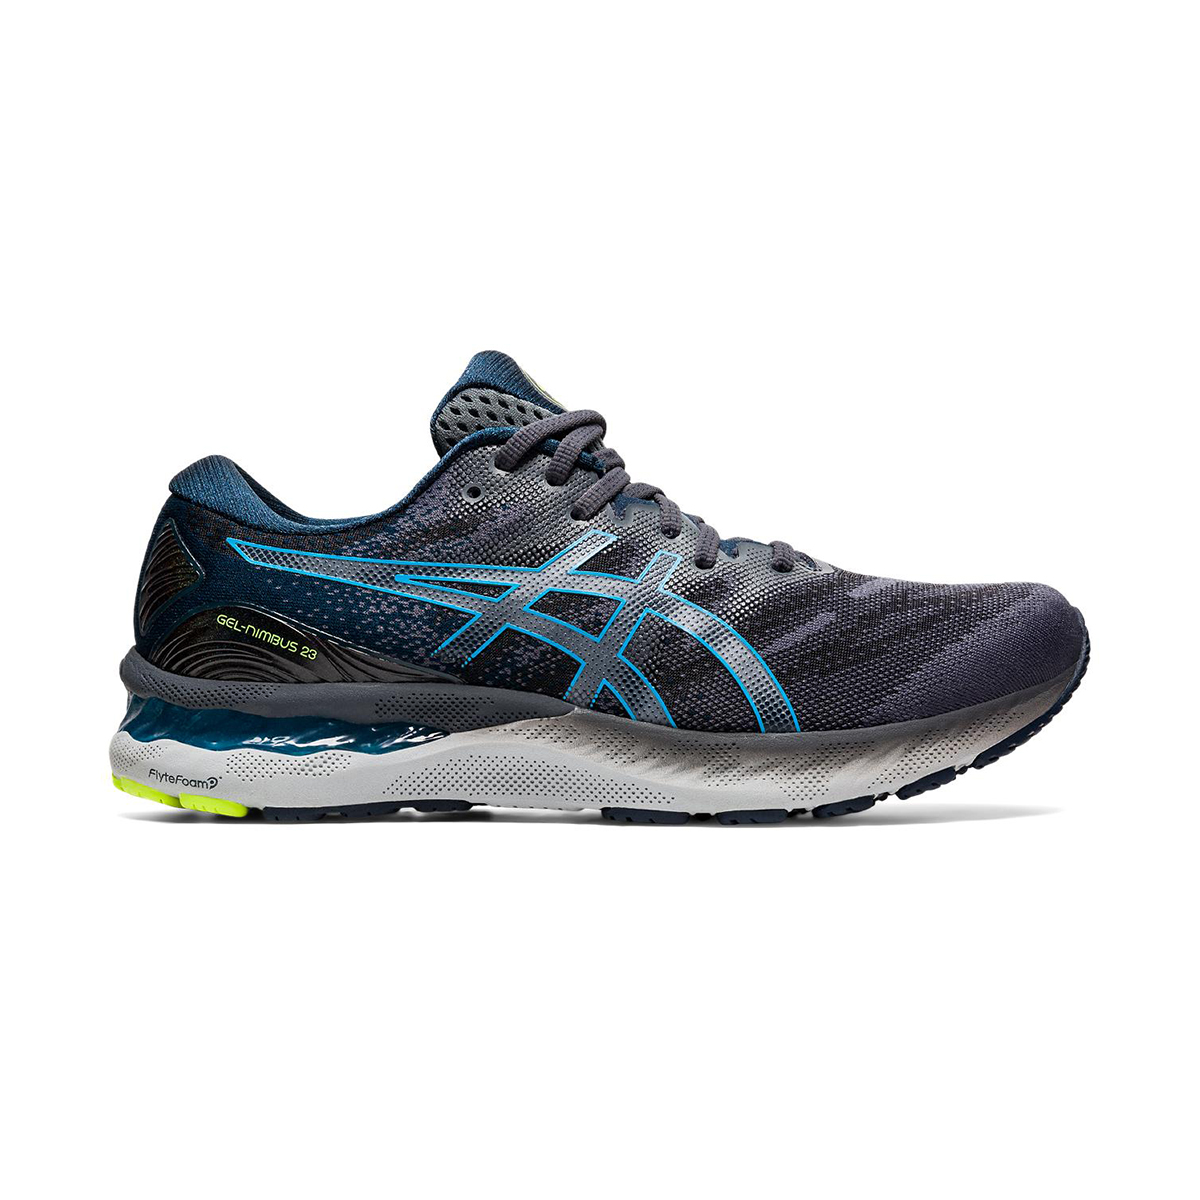 Men's Asics GEL-Nimbus 23 Running Shoe - Color: Carrier Grey/Digital Aqua - Size: 8.5 - Width: Regular, Carrier Grey/Digital Aqua, large, image 1